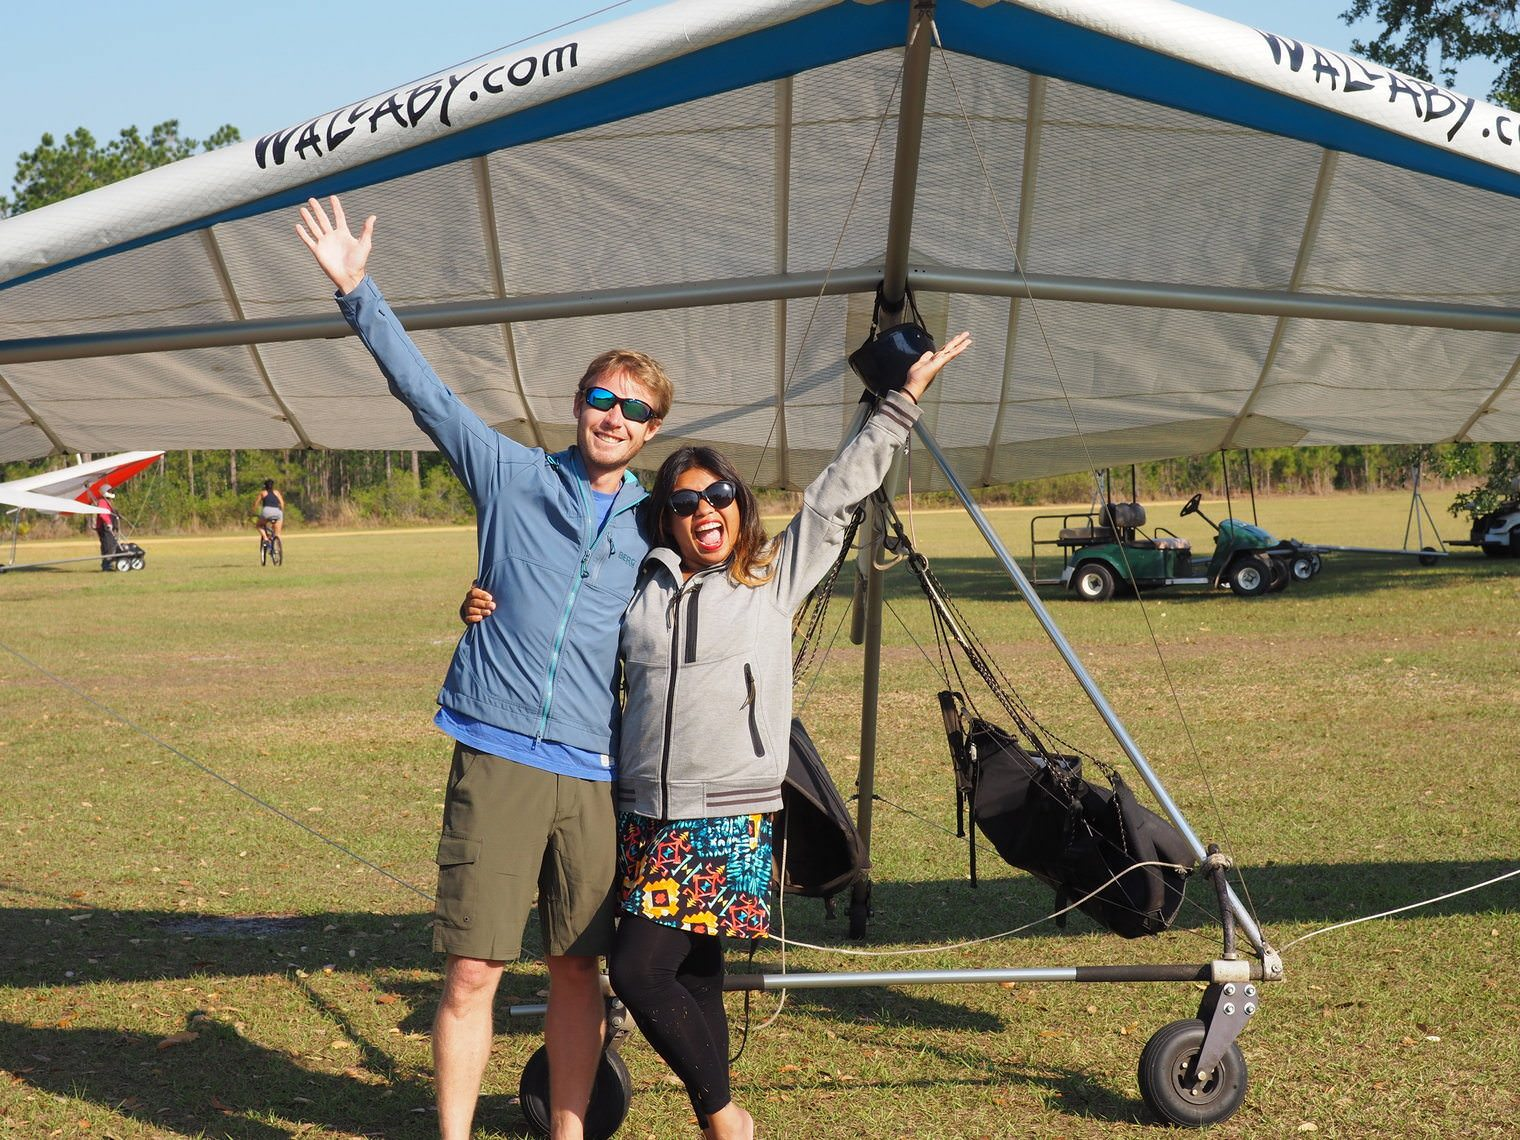 kissimmee_hang_gliding_fun